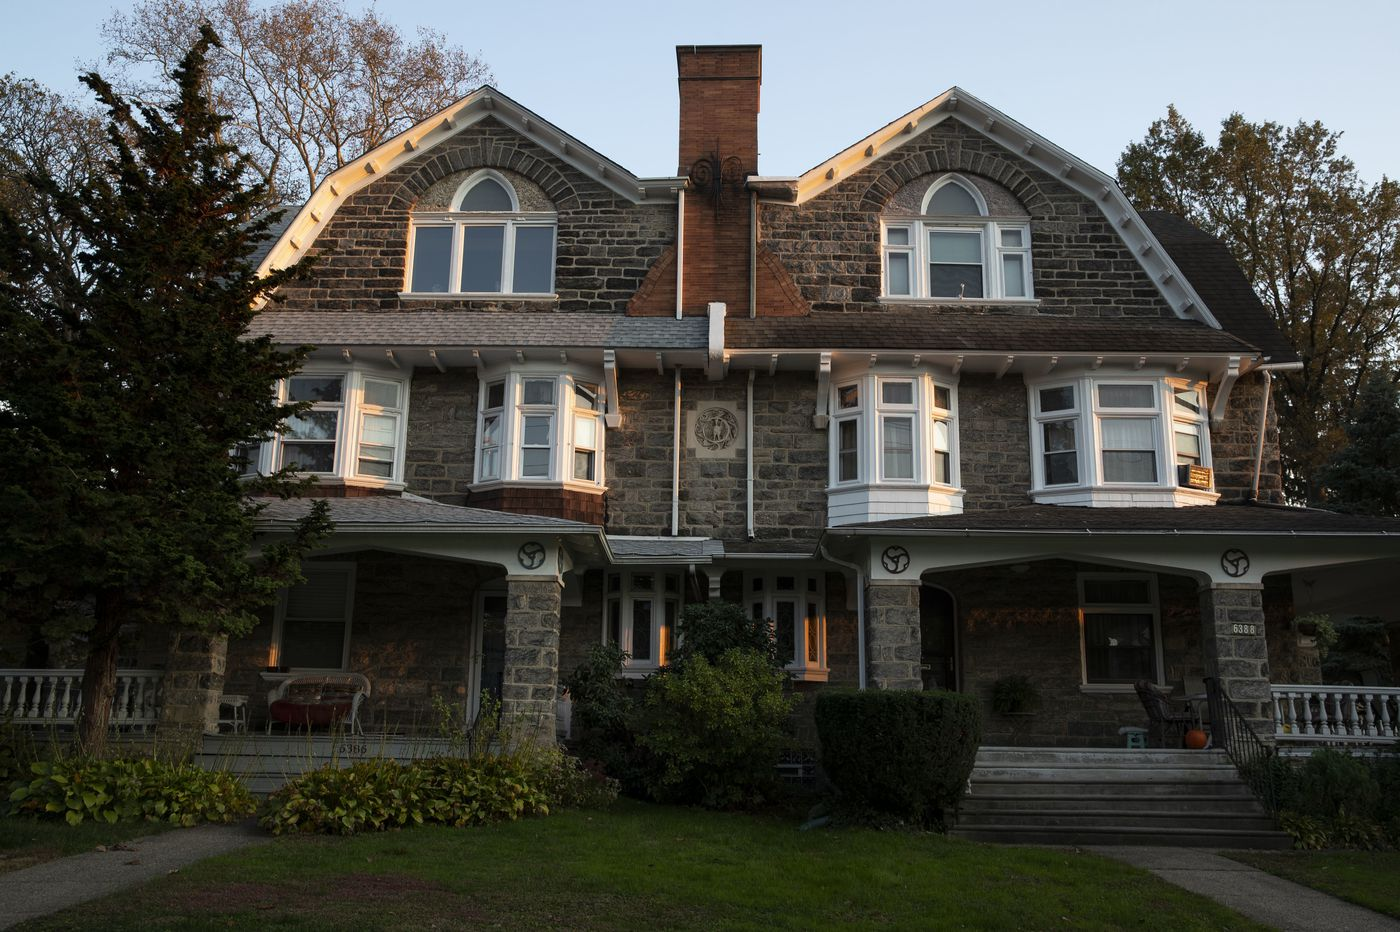 West Philly's Overbrook Farms declared a historic district, protecting properties from demolition